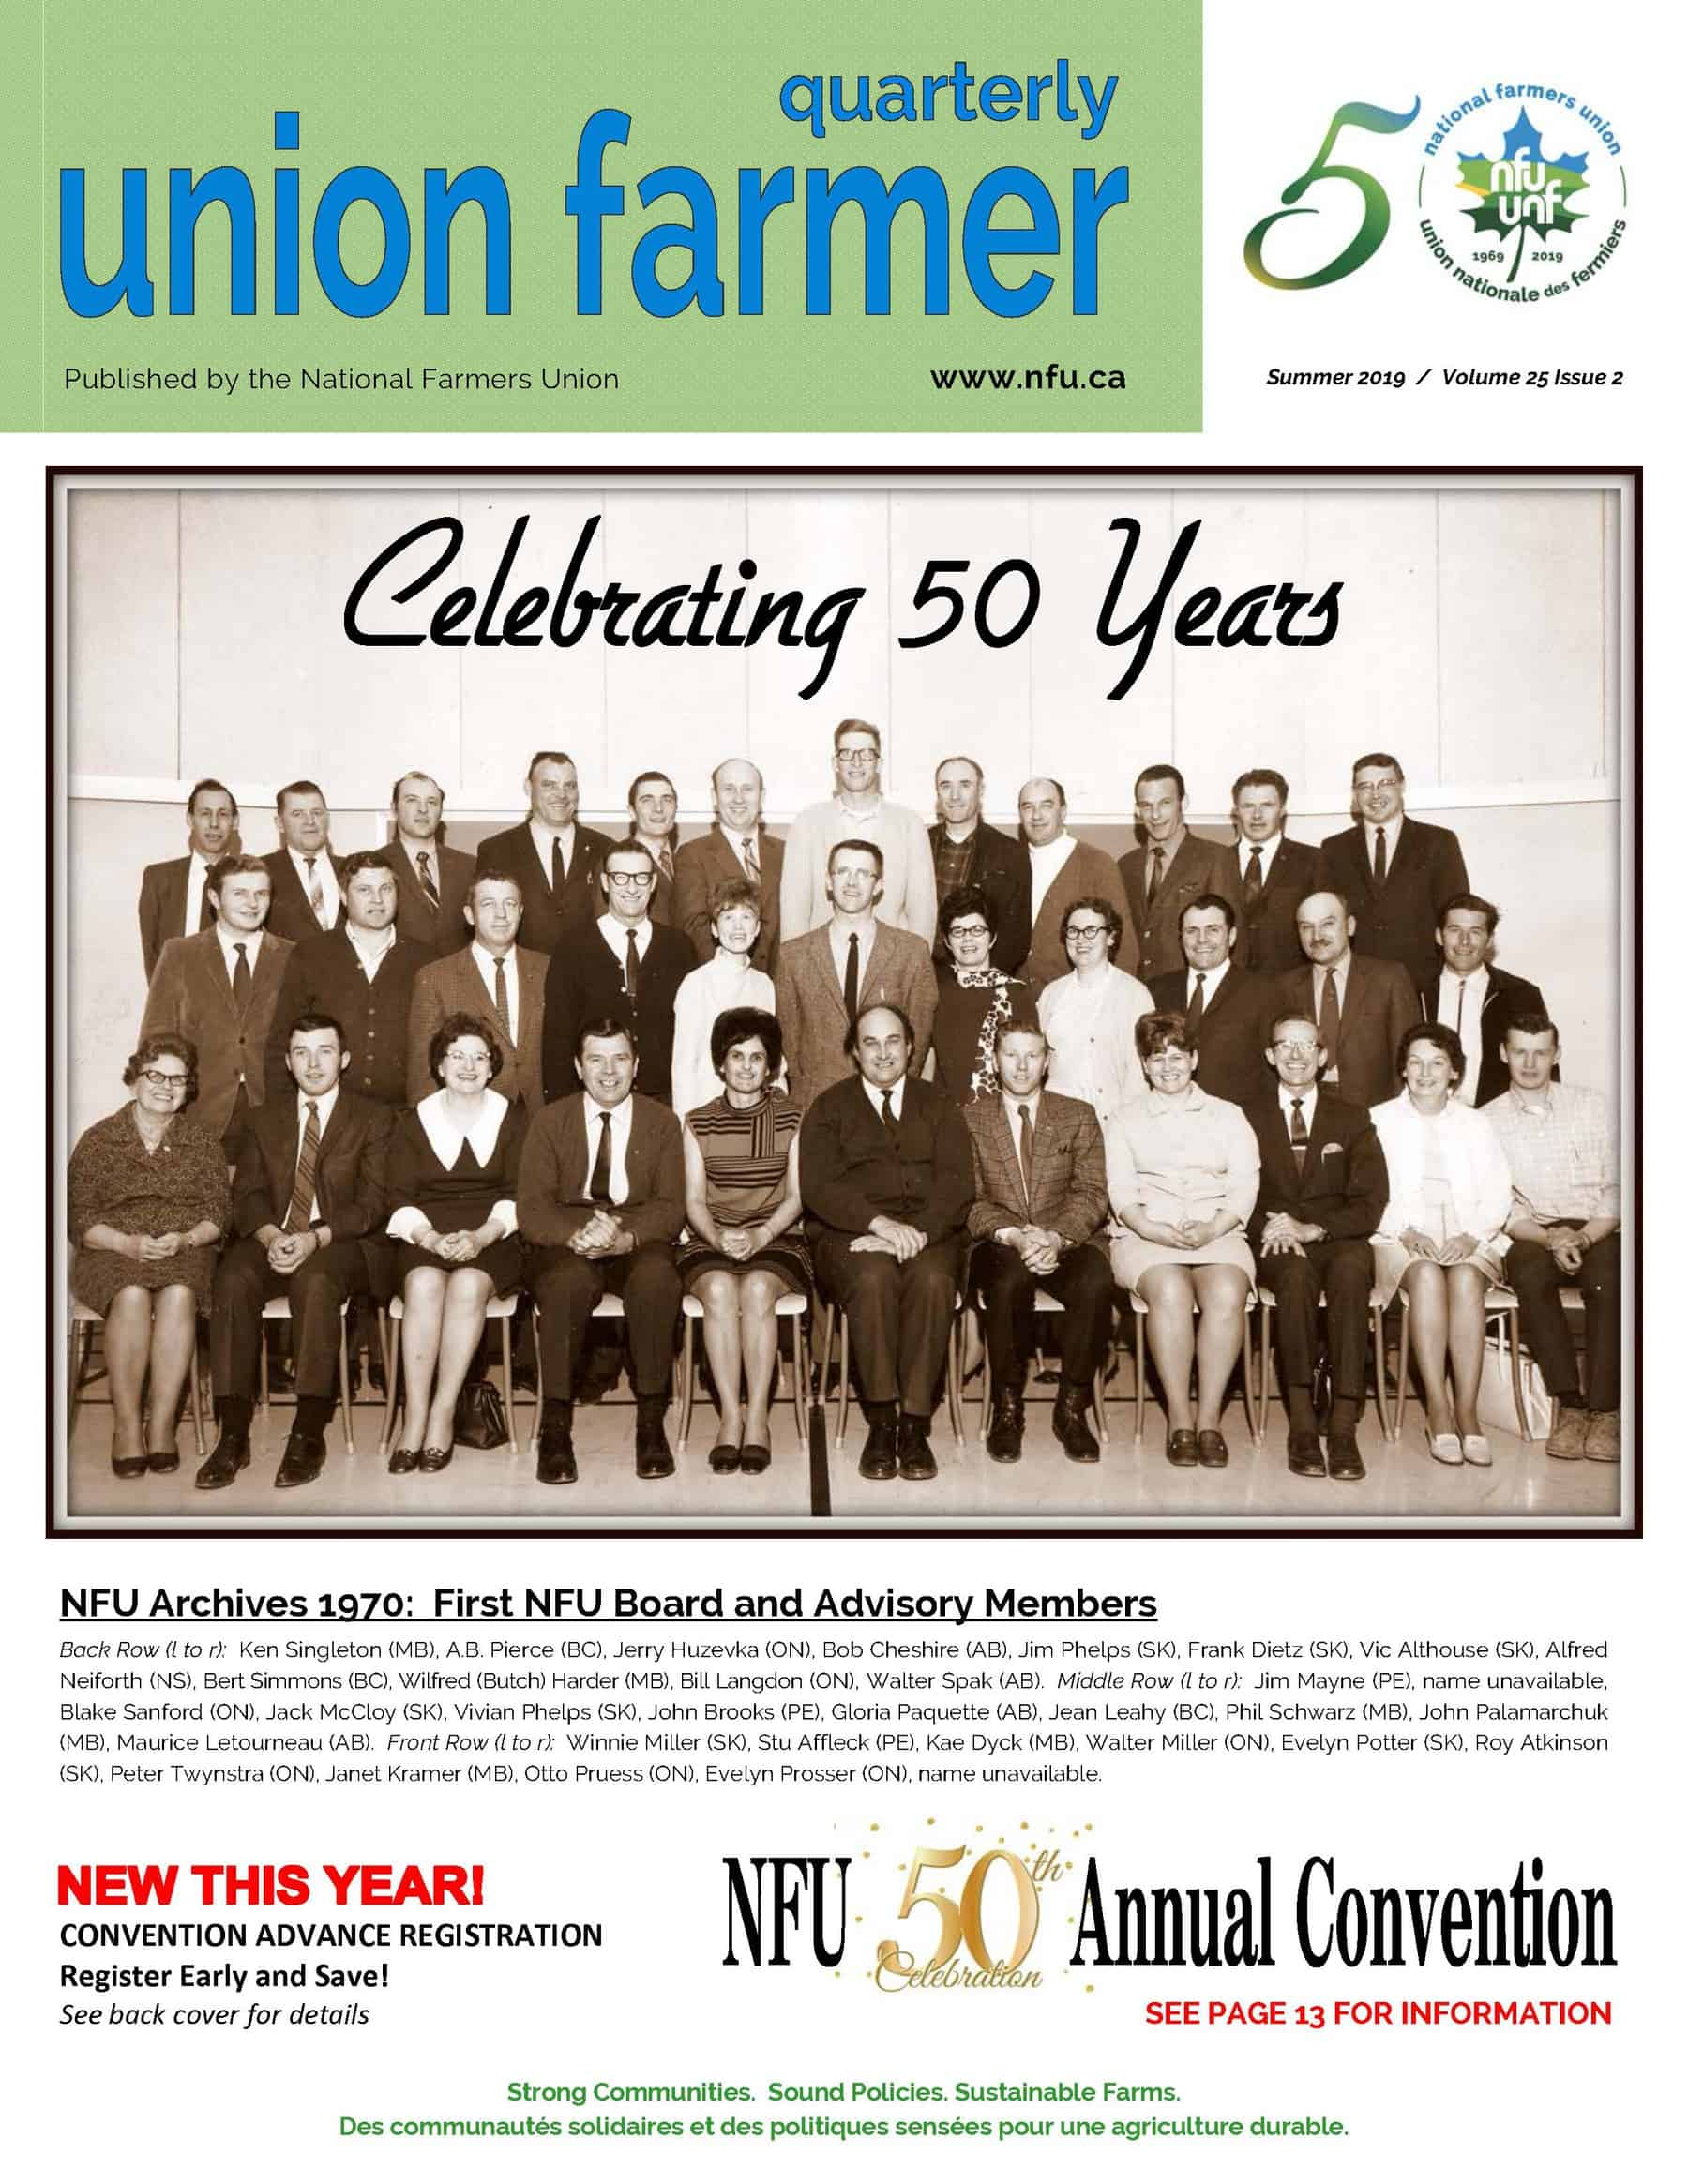 Union Farmer Quarterly: Summer 2019